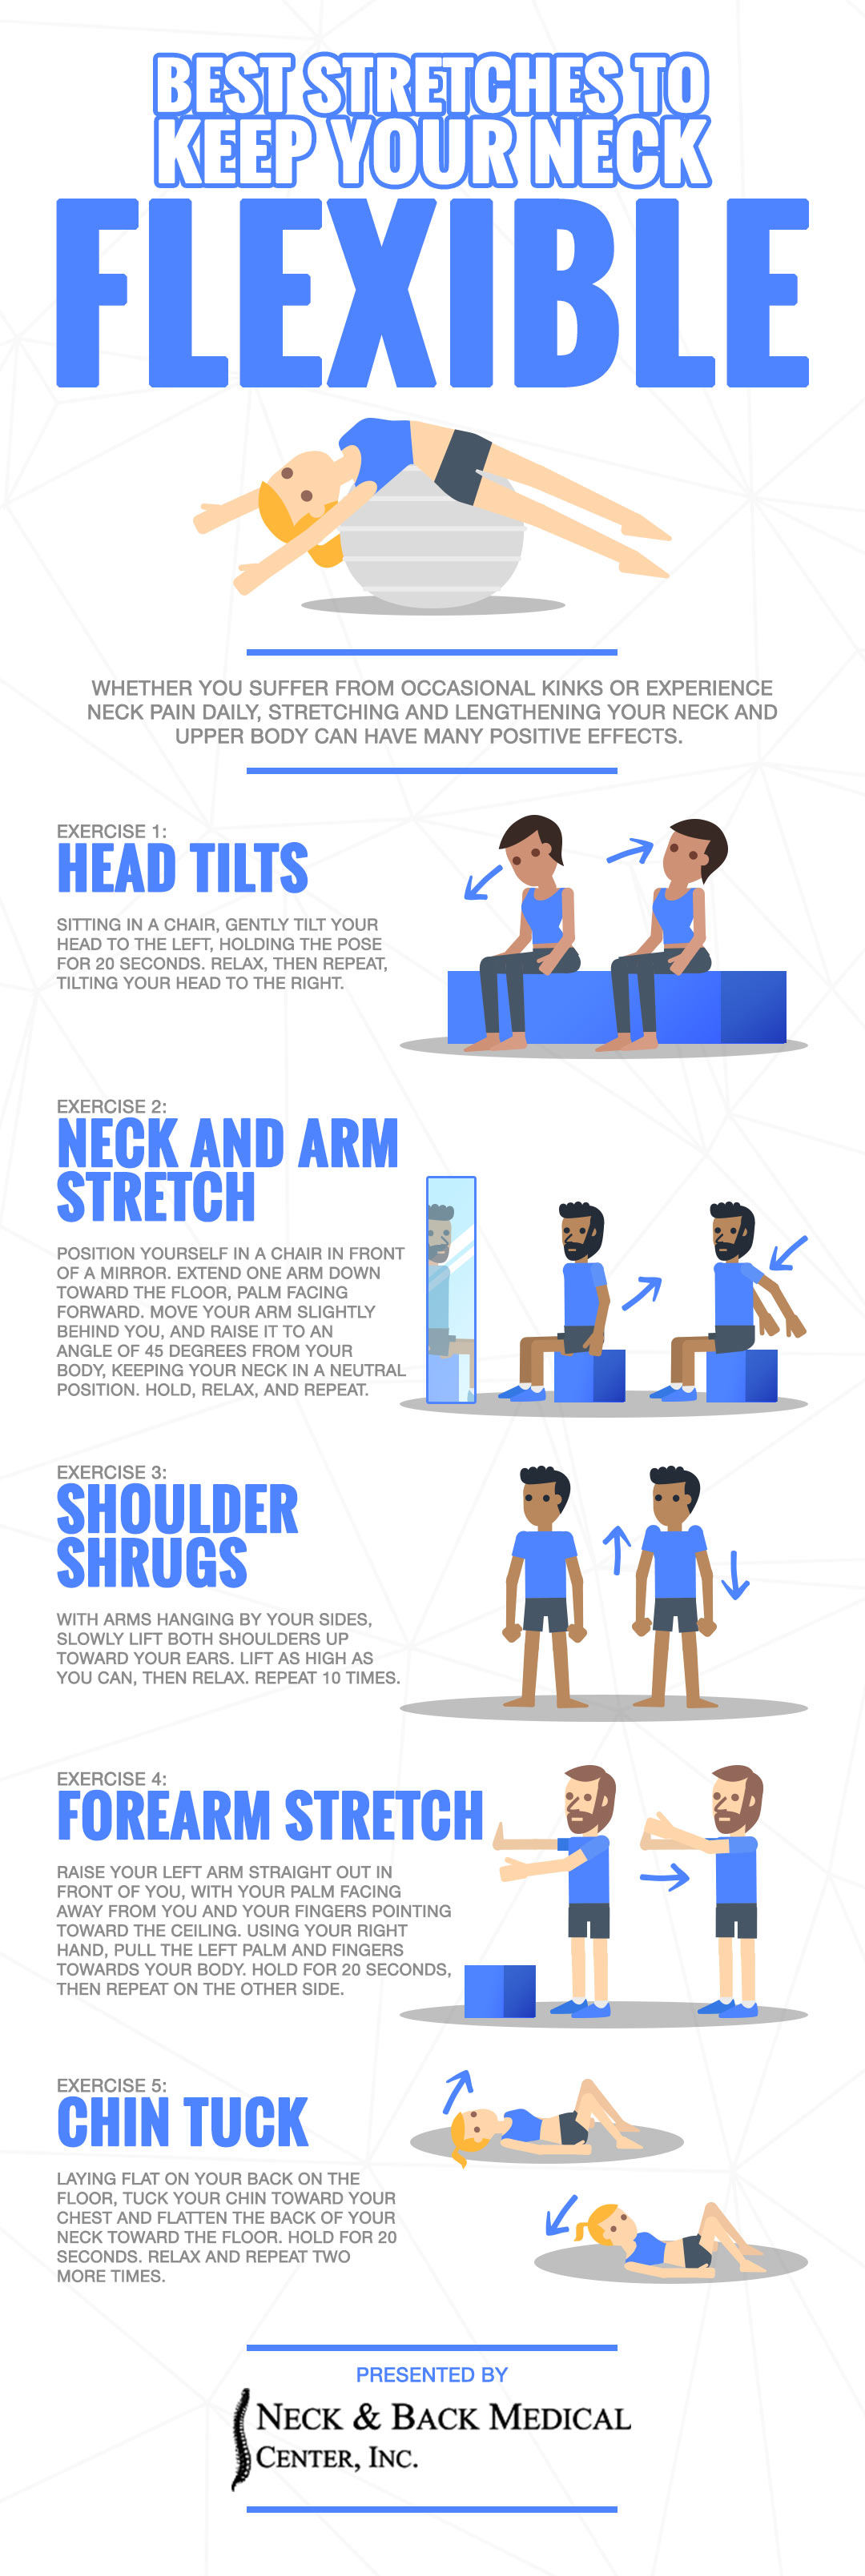 Fix Neck Pain Neck Stretches Neck And Back Medical Center